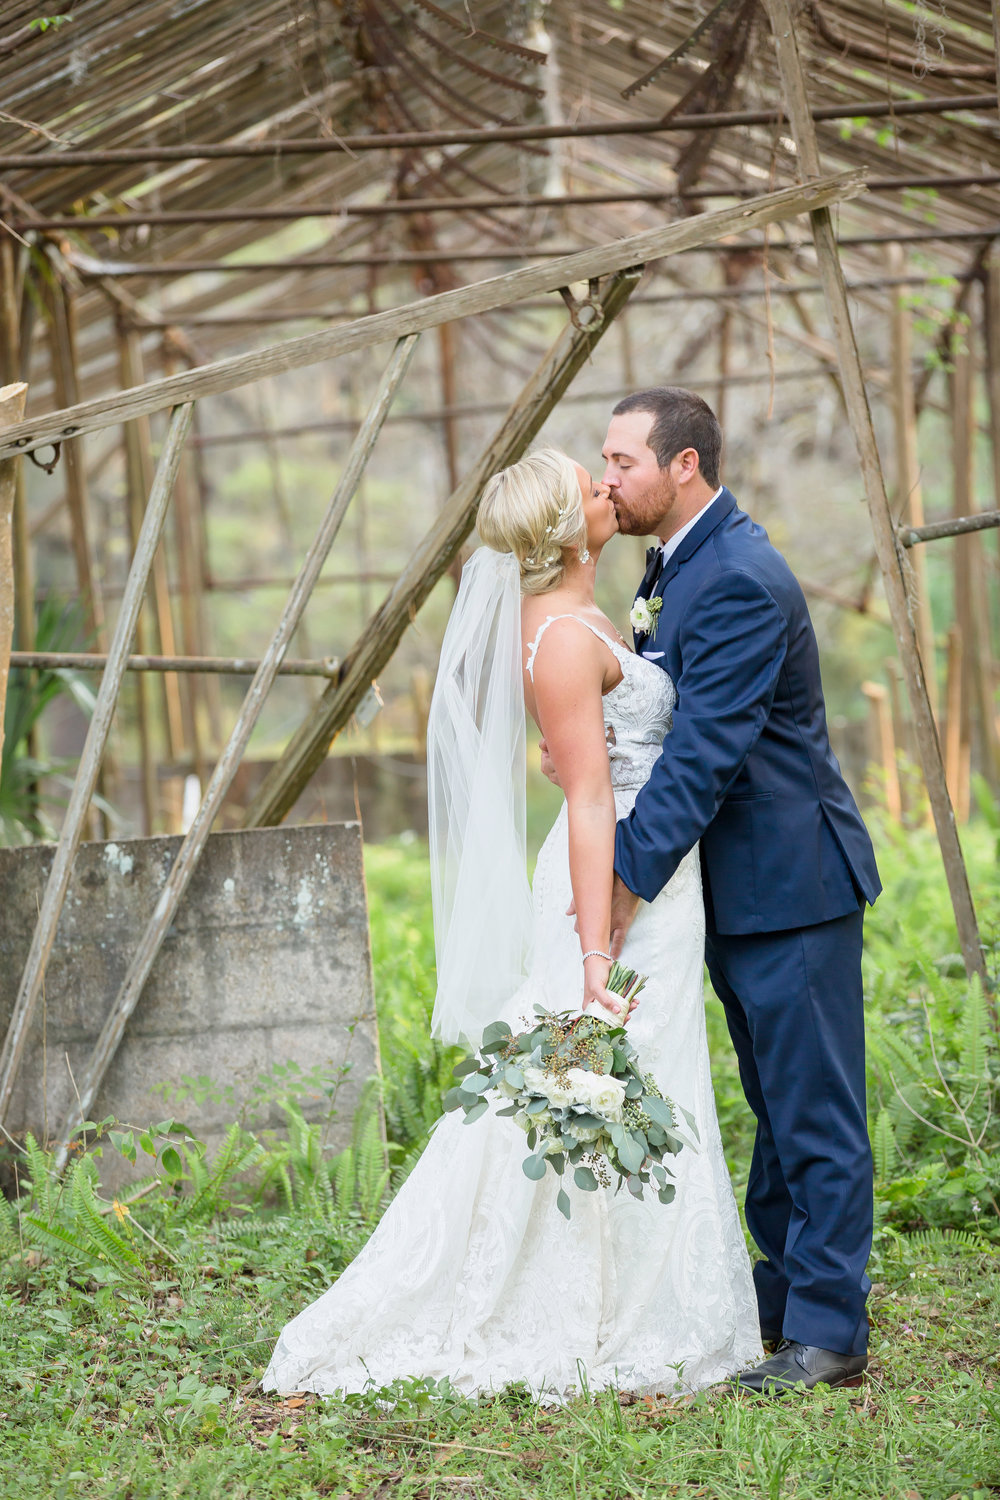 Weddings - Click here to see more